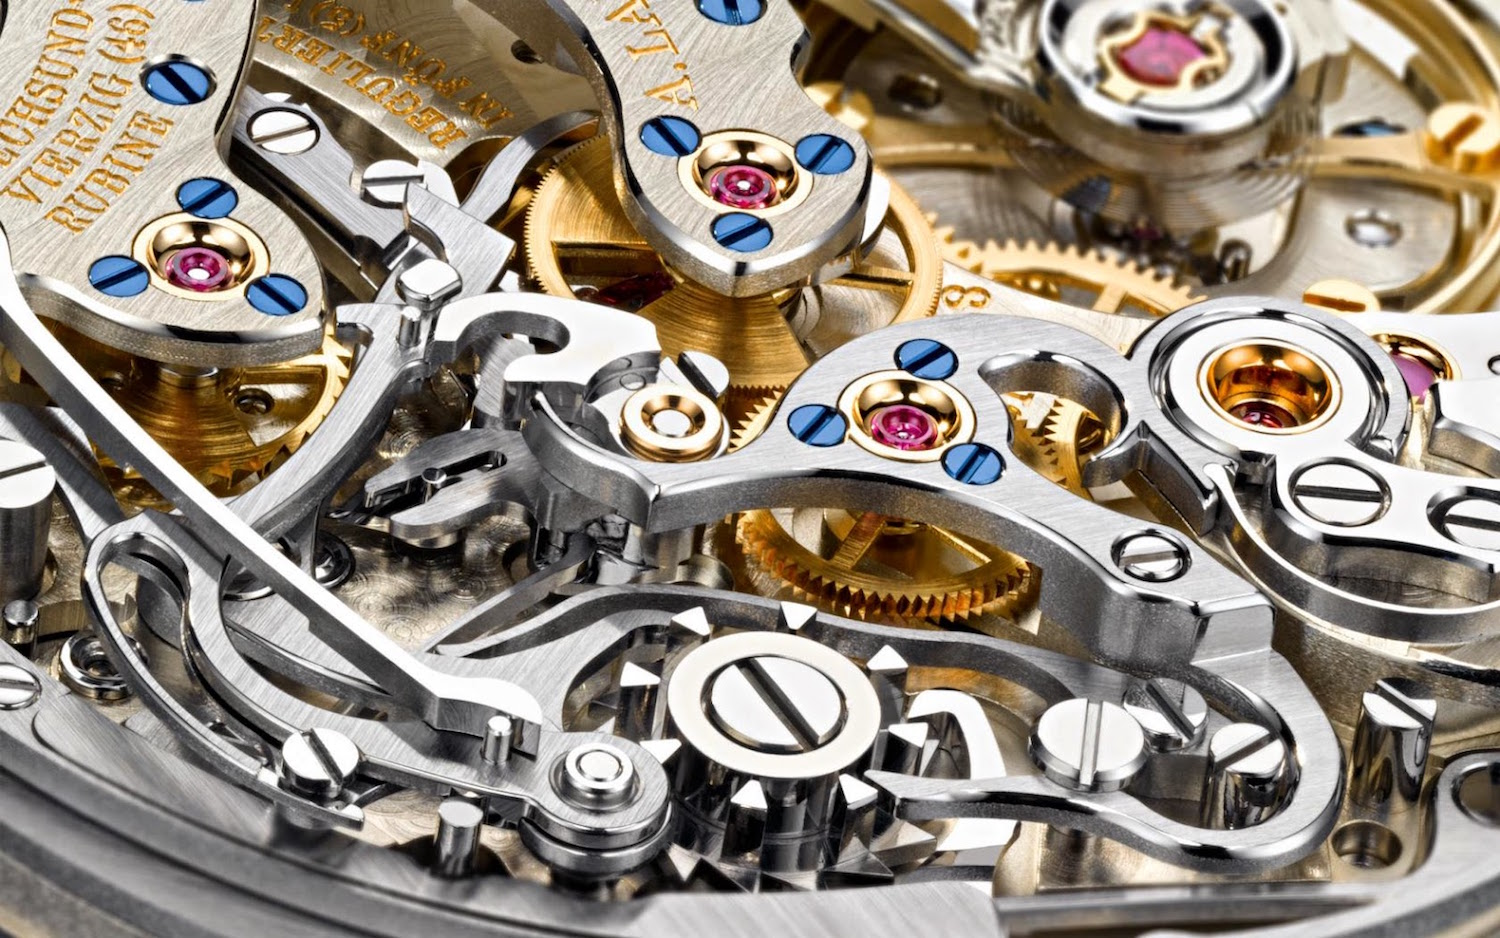 Discover the Wonders of Haute Holorgerie at SIHH 2019 - Clockwork sihh 2019 Discover the Wonders of Haute Horlogerie at SIHH 2019 Discover the Wonders of Haute Holorgerie at SIHH 2019 Clockwork